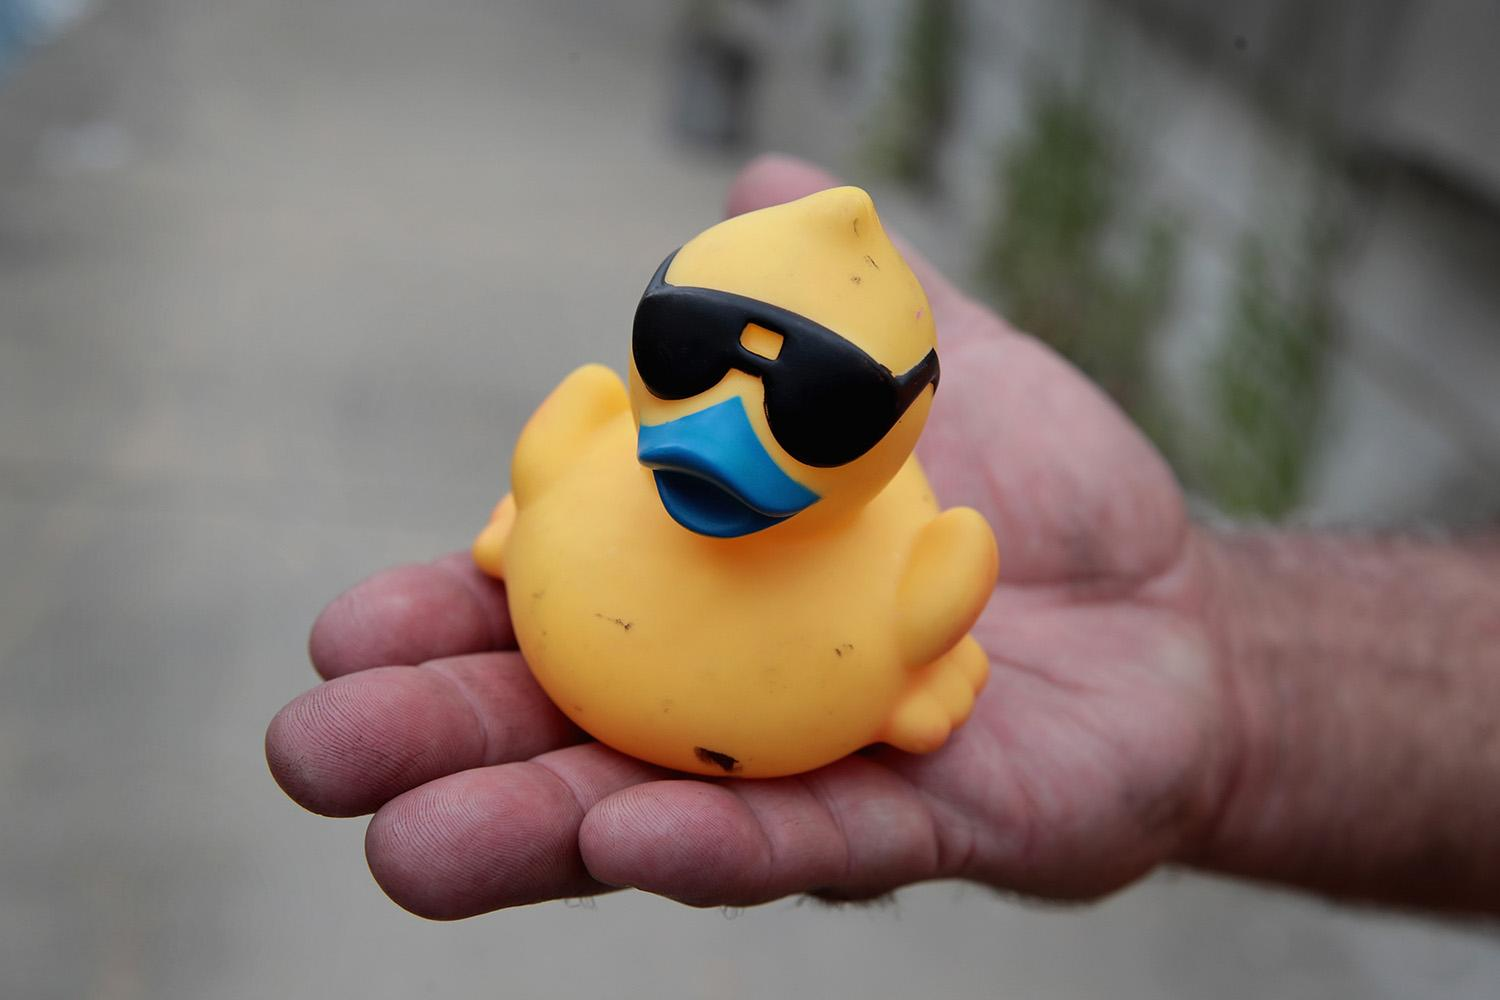 Chicago Holds Annual Rubber Duck Race In Chicago River